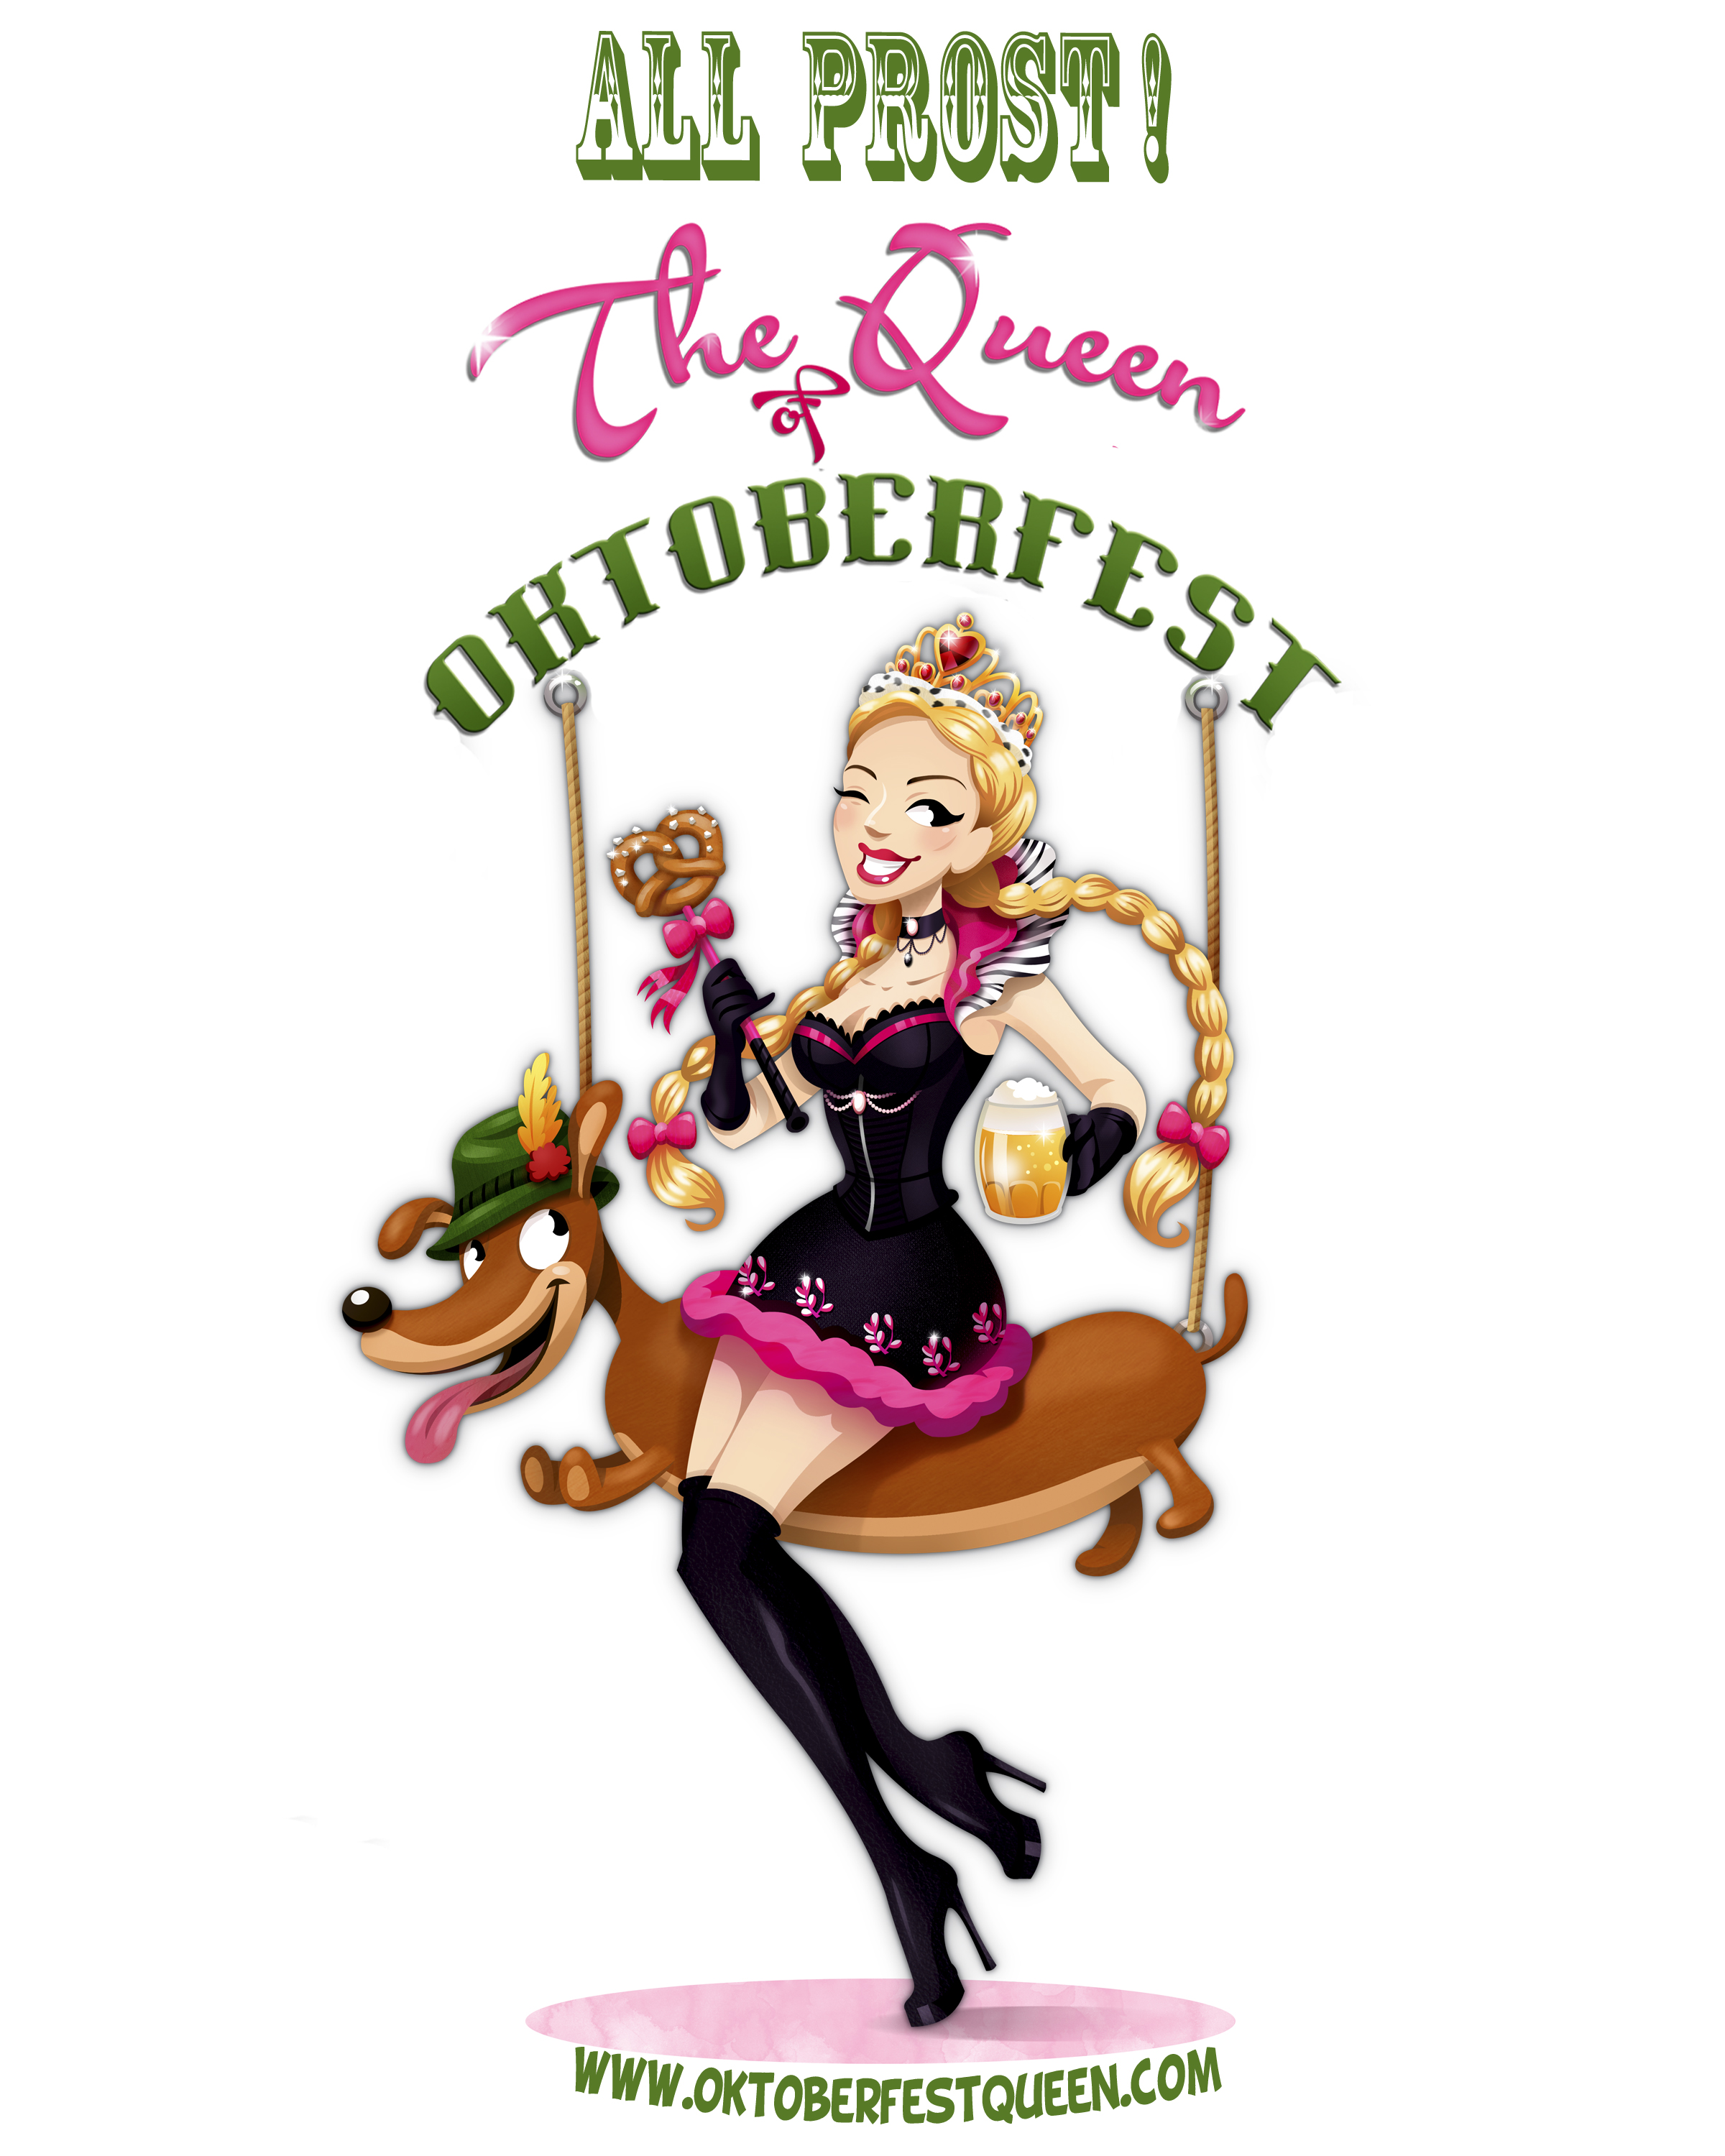 The Oktoberfest Queens Logo